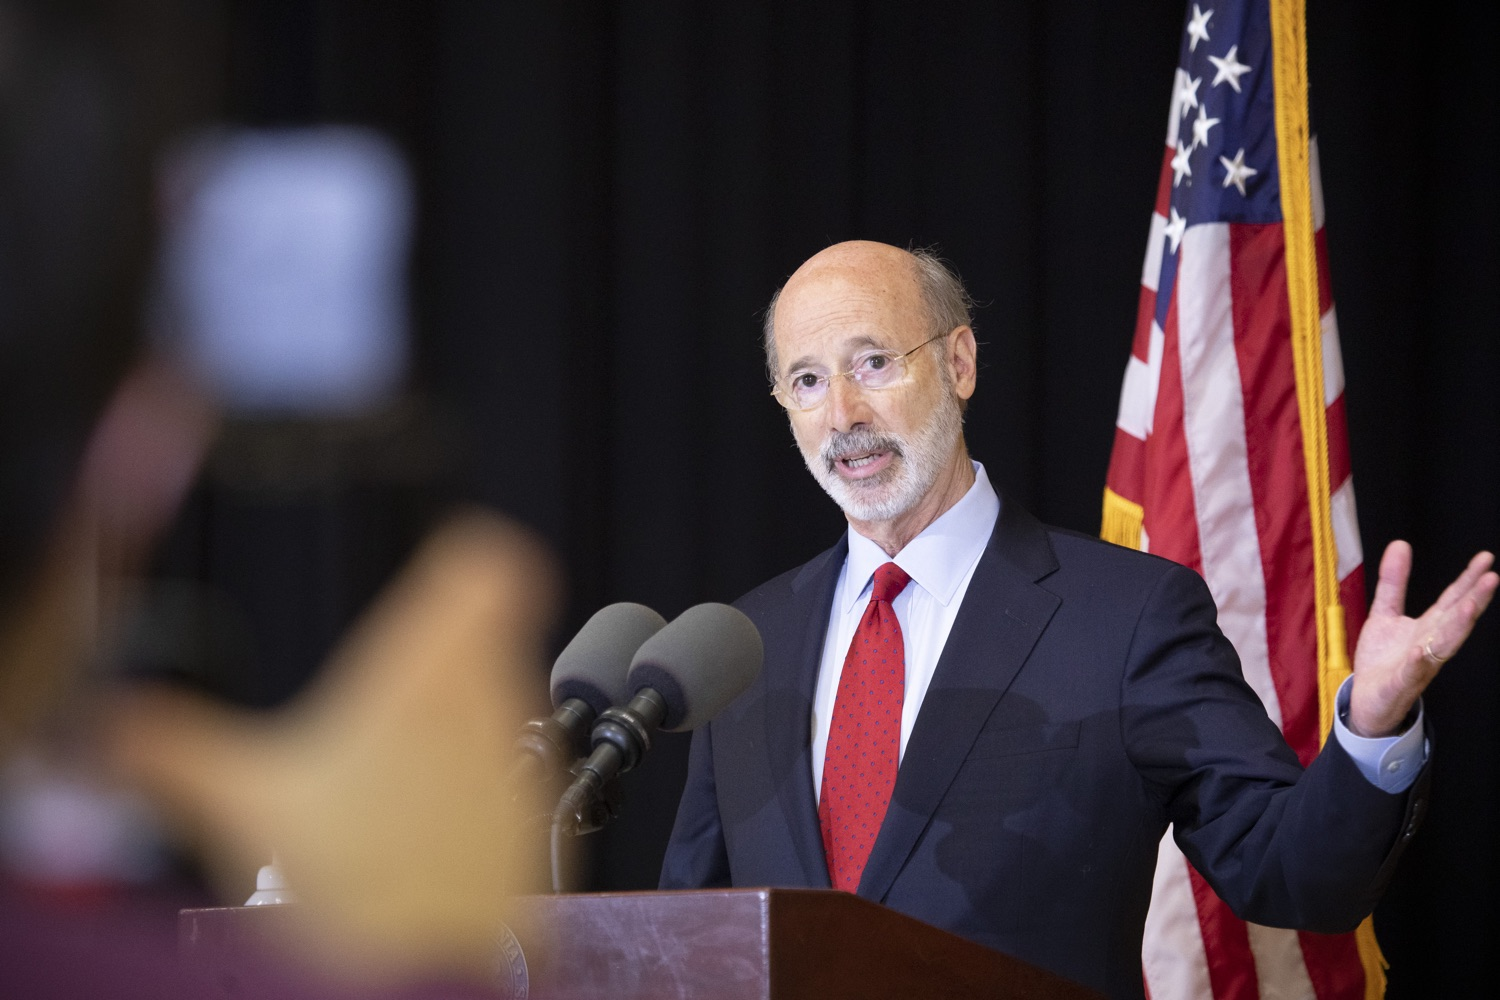 "<a href=""https://filesource.wostreaming.net/commonwealthofpa/photo/18310_gov_adult_use_cannabis_dz_001.jpg"" target=""_blank"">⇣ Download Photo<br></a>Governor Tom Wolf speaks to the press.Governor Tom Wolf visited The Mountain Center in Tobyhanna, Monroe County today to talk about the economic growth potential and restorative justice benefits of legalizing adult-use cannabis, something the state General Assembly has not yet done despite multiple requests from the governor and Lieutenant Governor John Fetterman to take up legislation this fall.  Tobyhanna, PA  October 13, 2020"